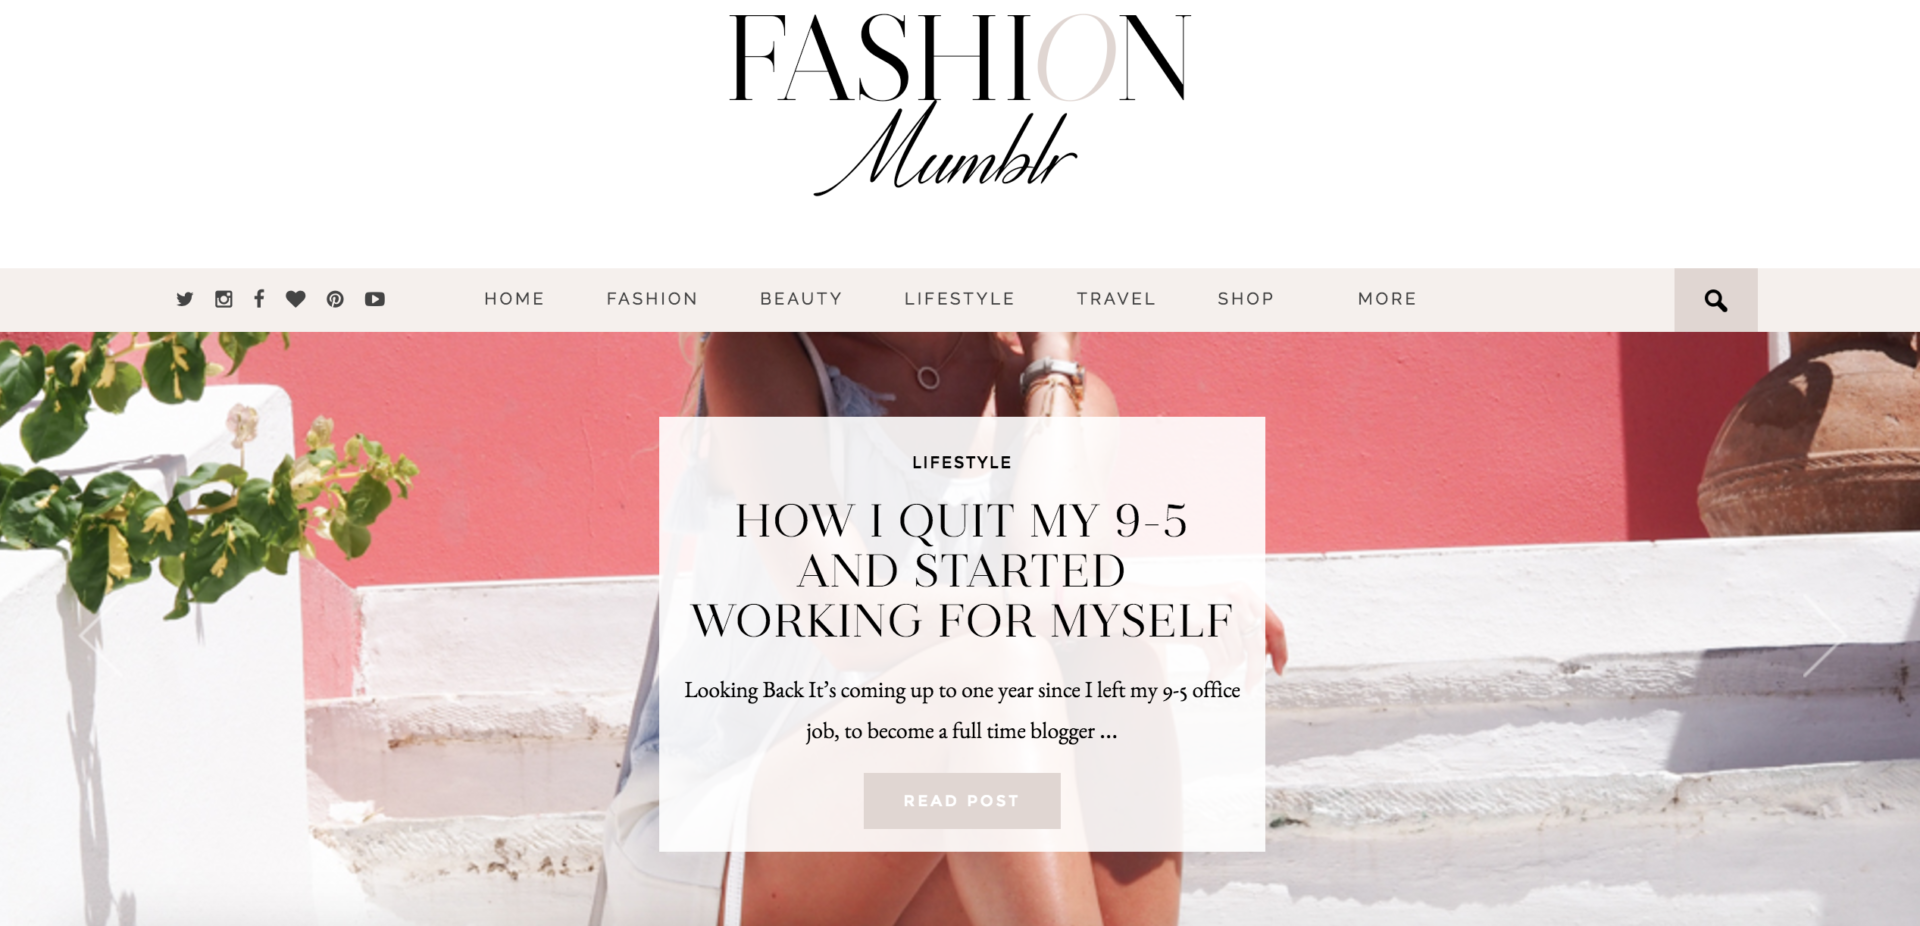 Blogs I've Bookmarked Fashion Mumblr